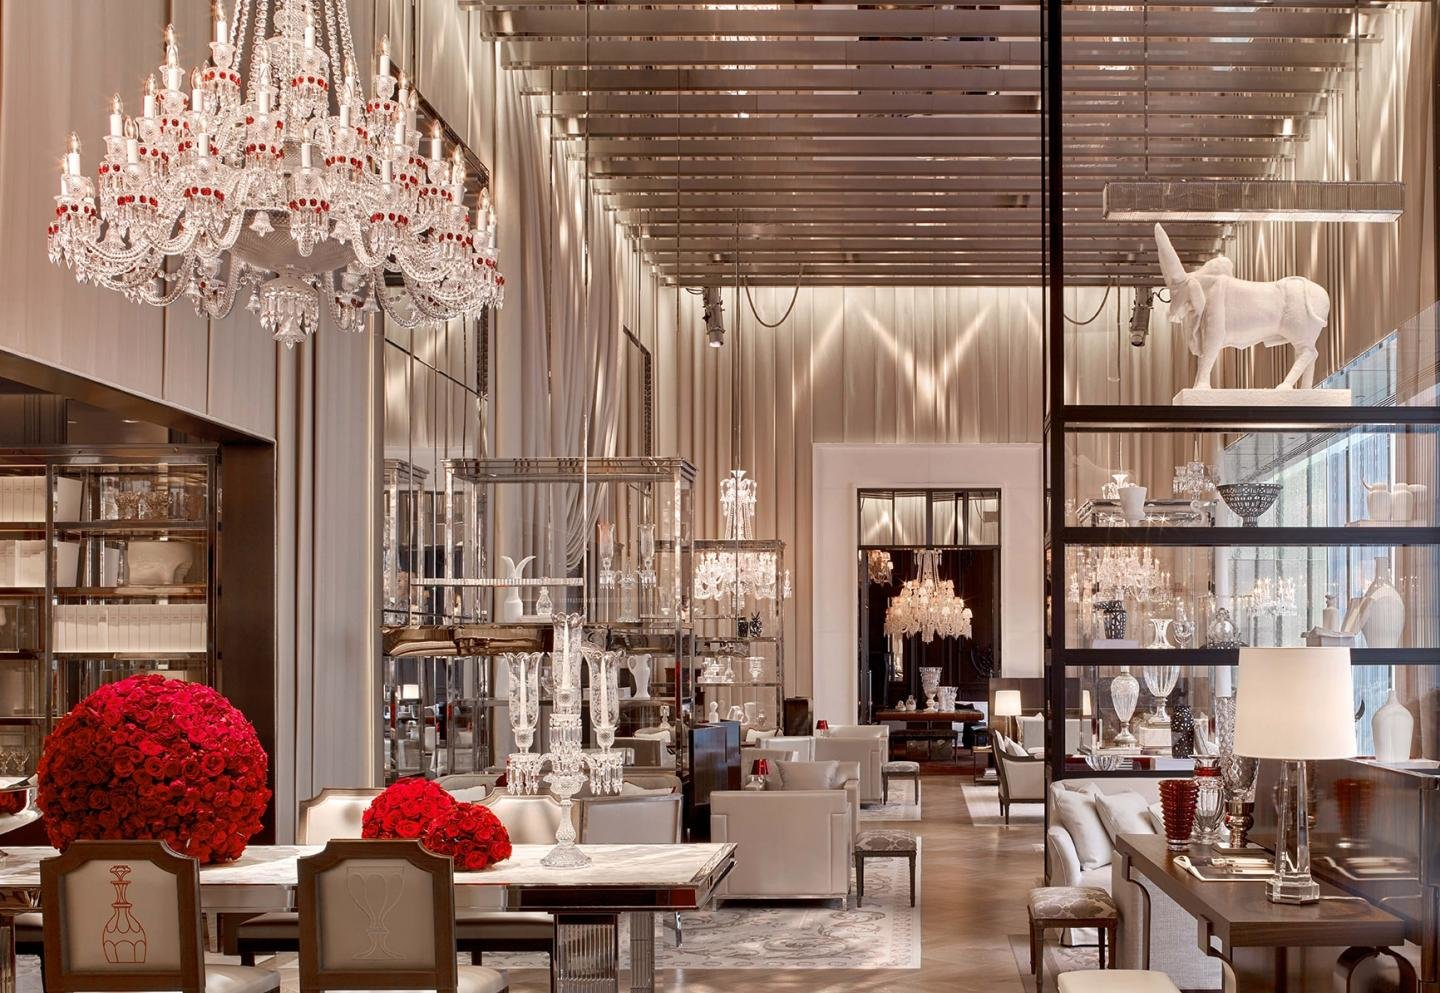 Baccarat Hoel in New York with crystal chandeliers